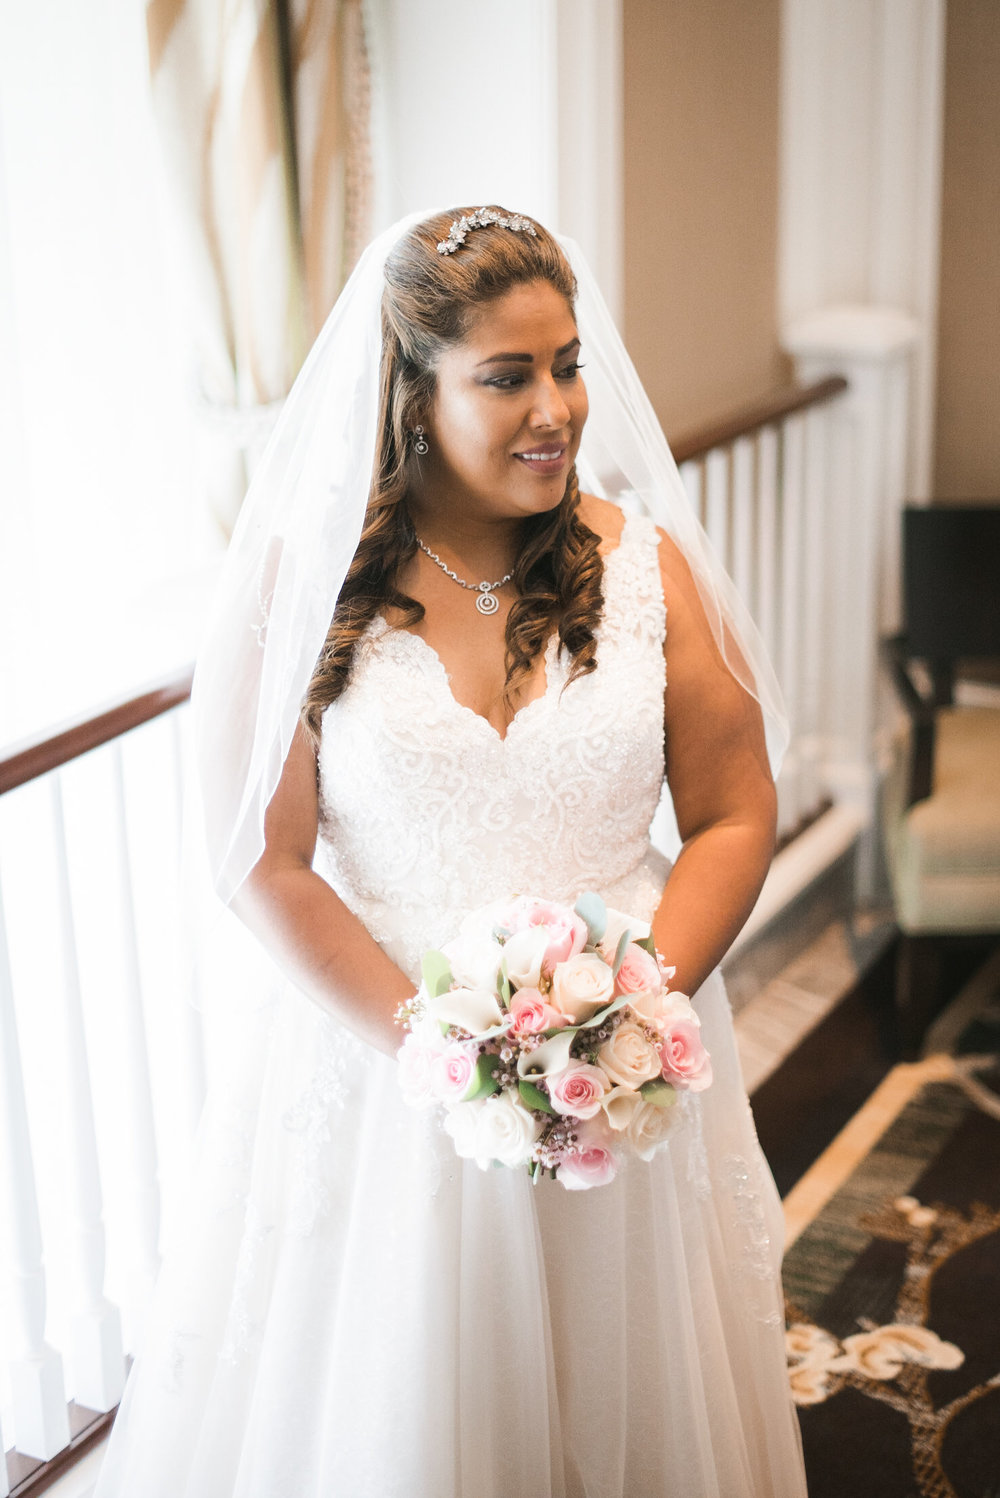 Bride standing on stair landing